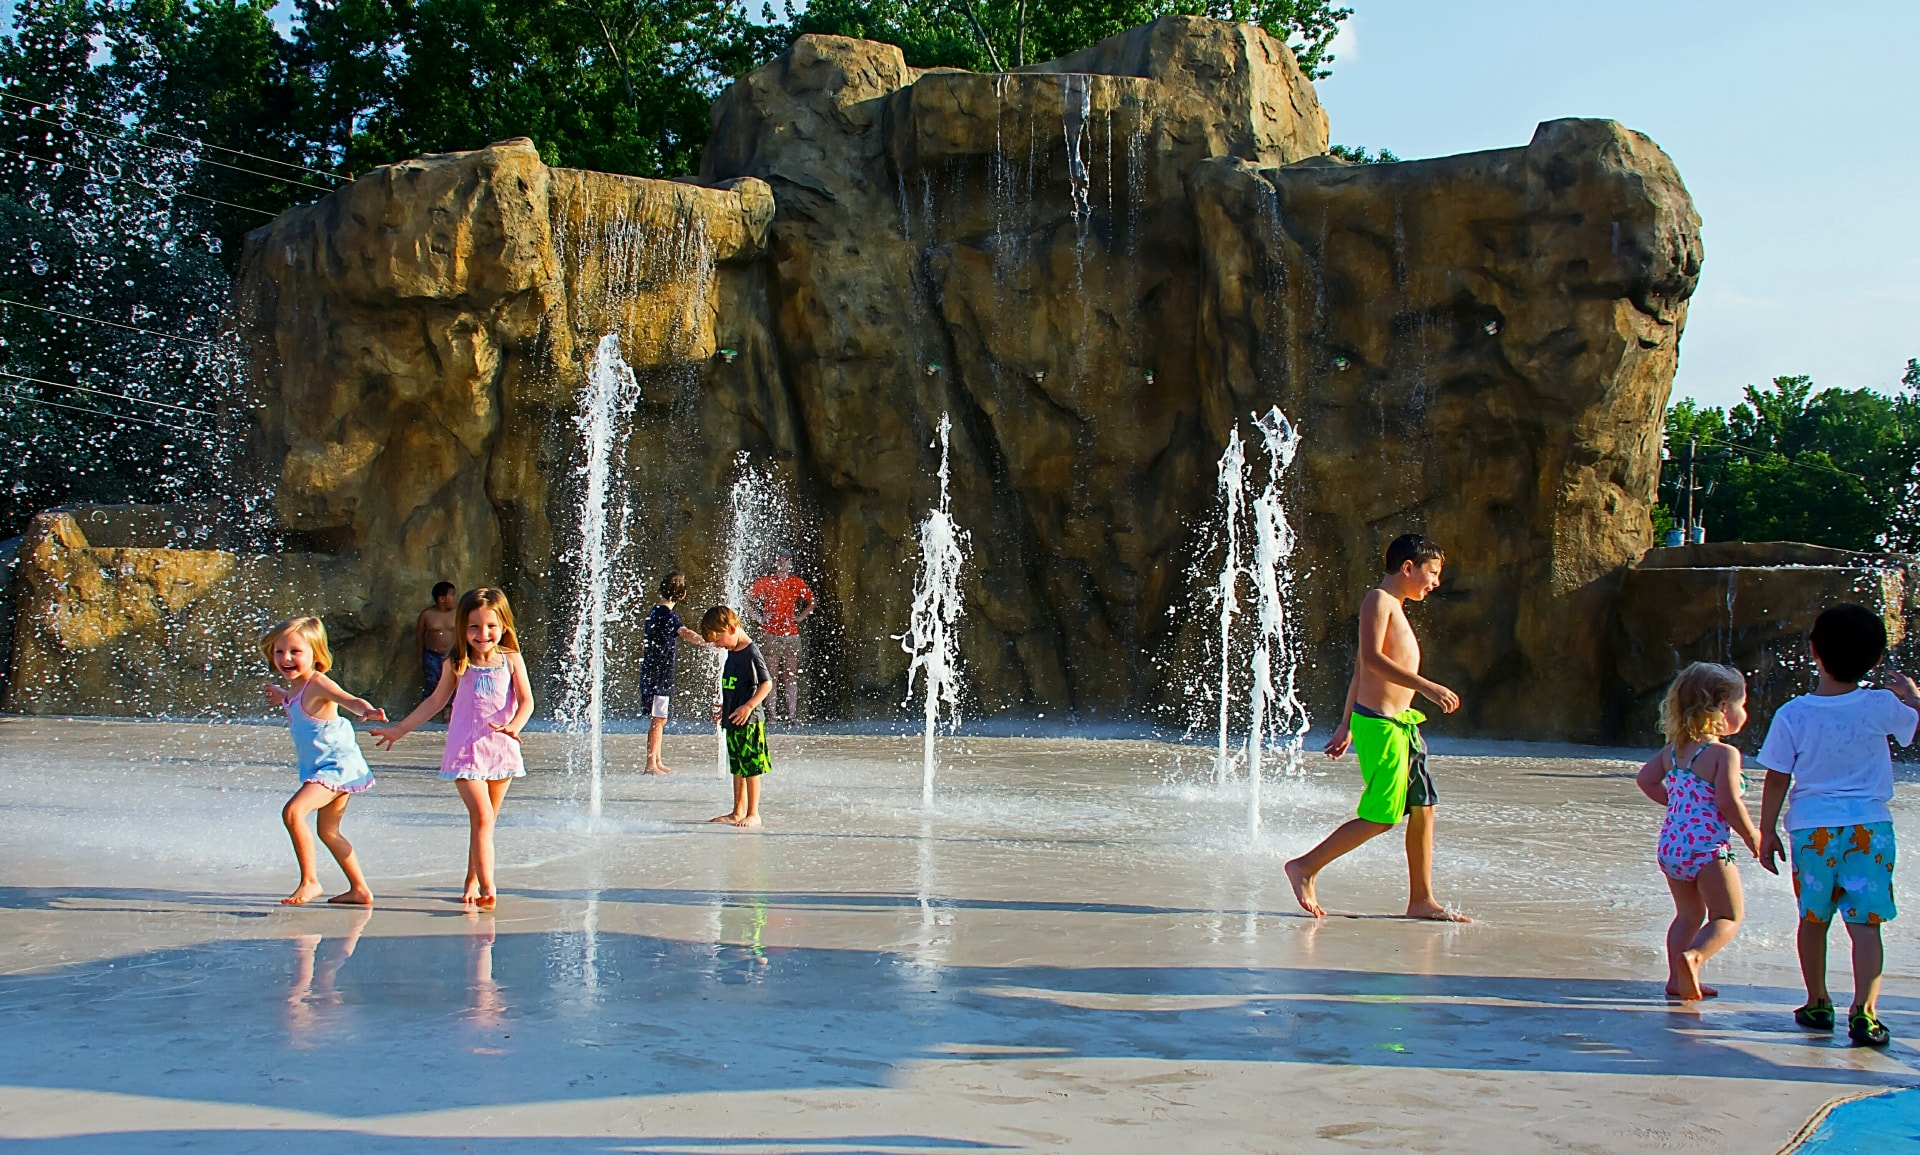 Zoo Birthday Party at Waterfall Junction splash pad - kids playing